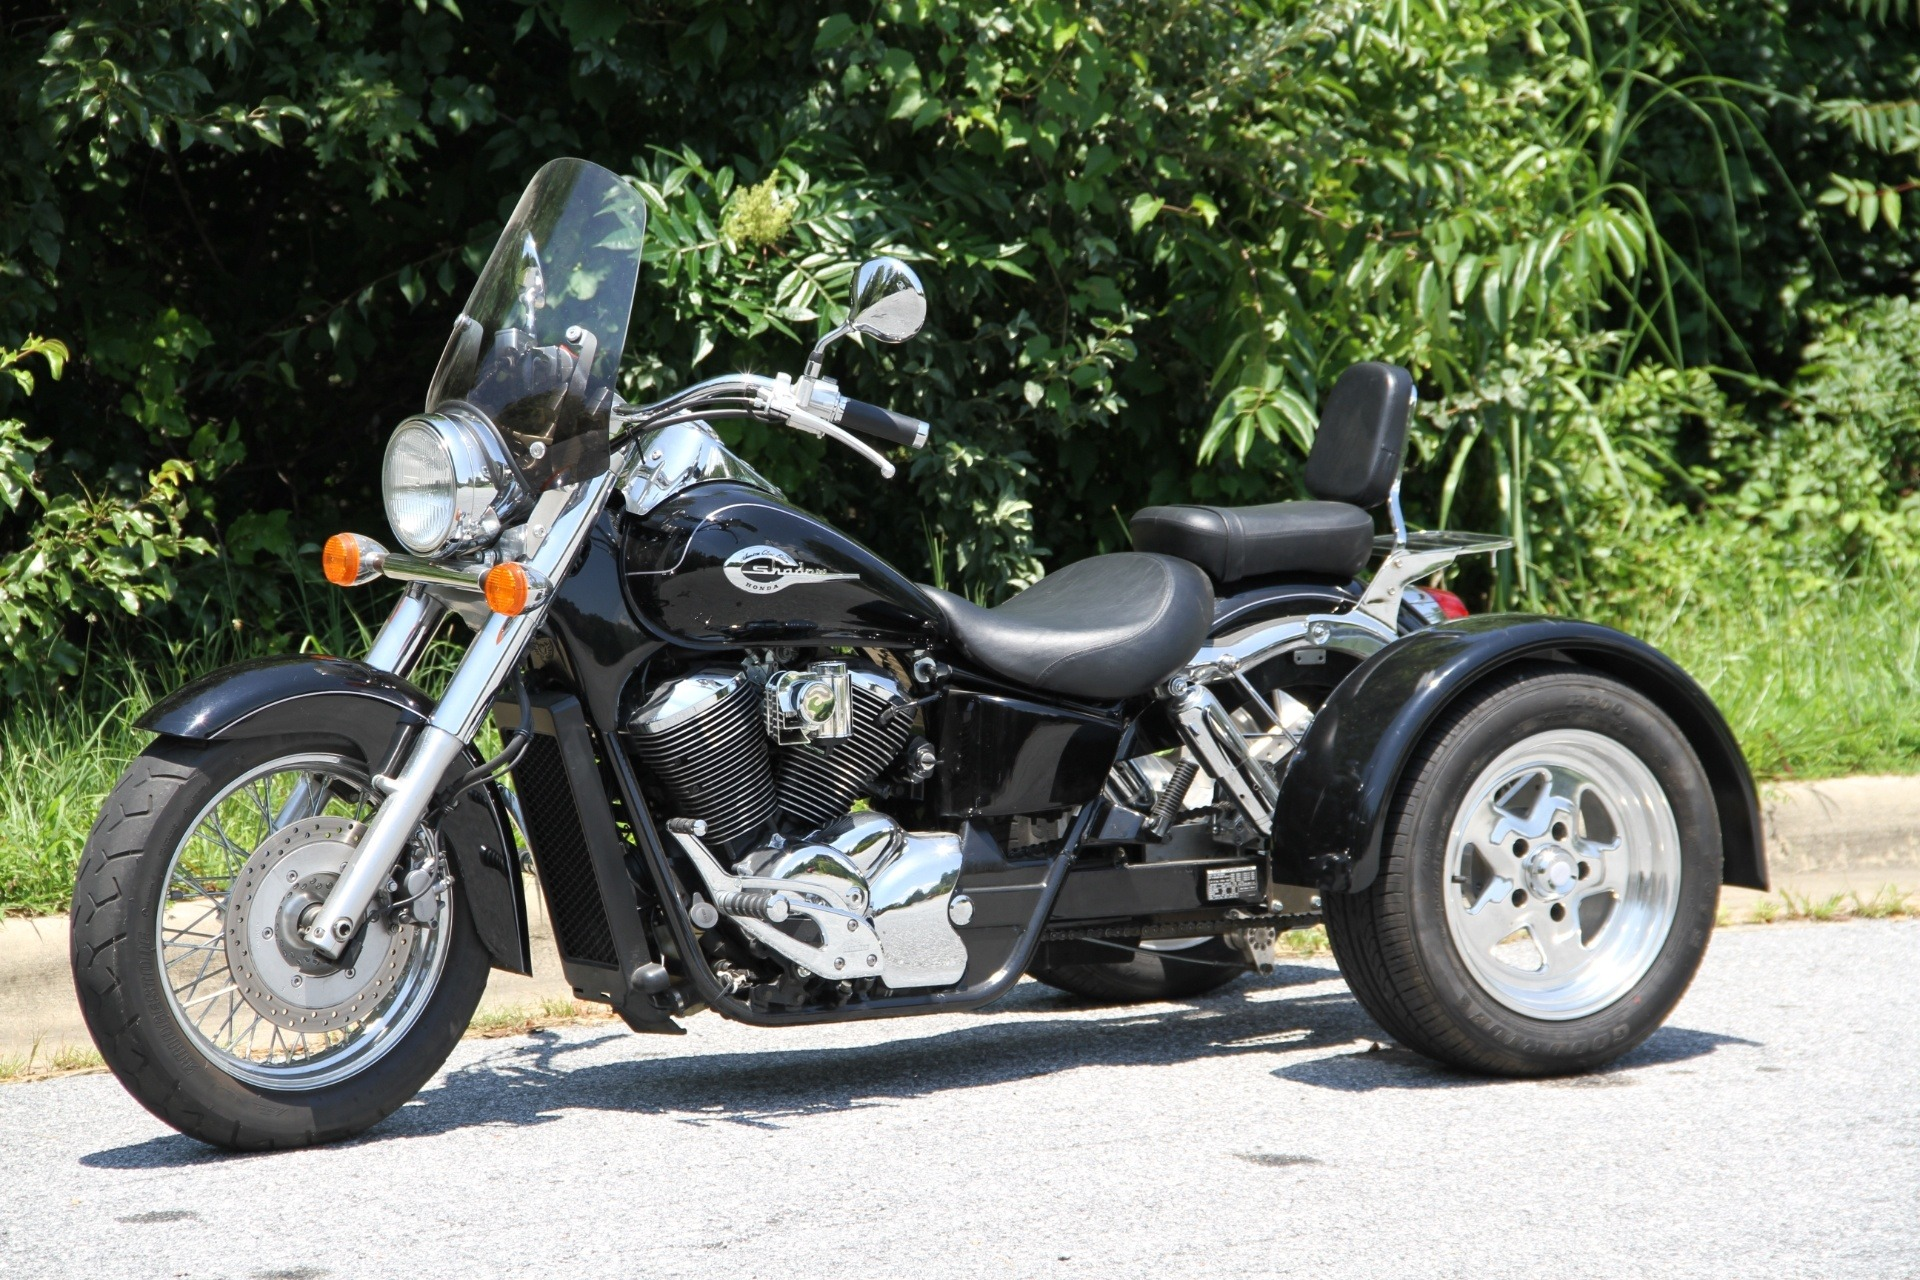 2002 honda shadow ace 750 deluxe motorcycles. Black Bedroom Furniture Sets. Home Design Ideas